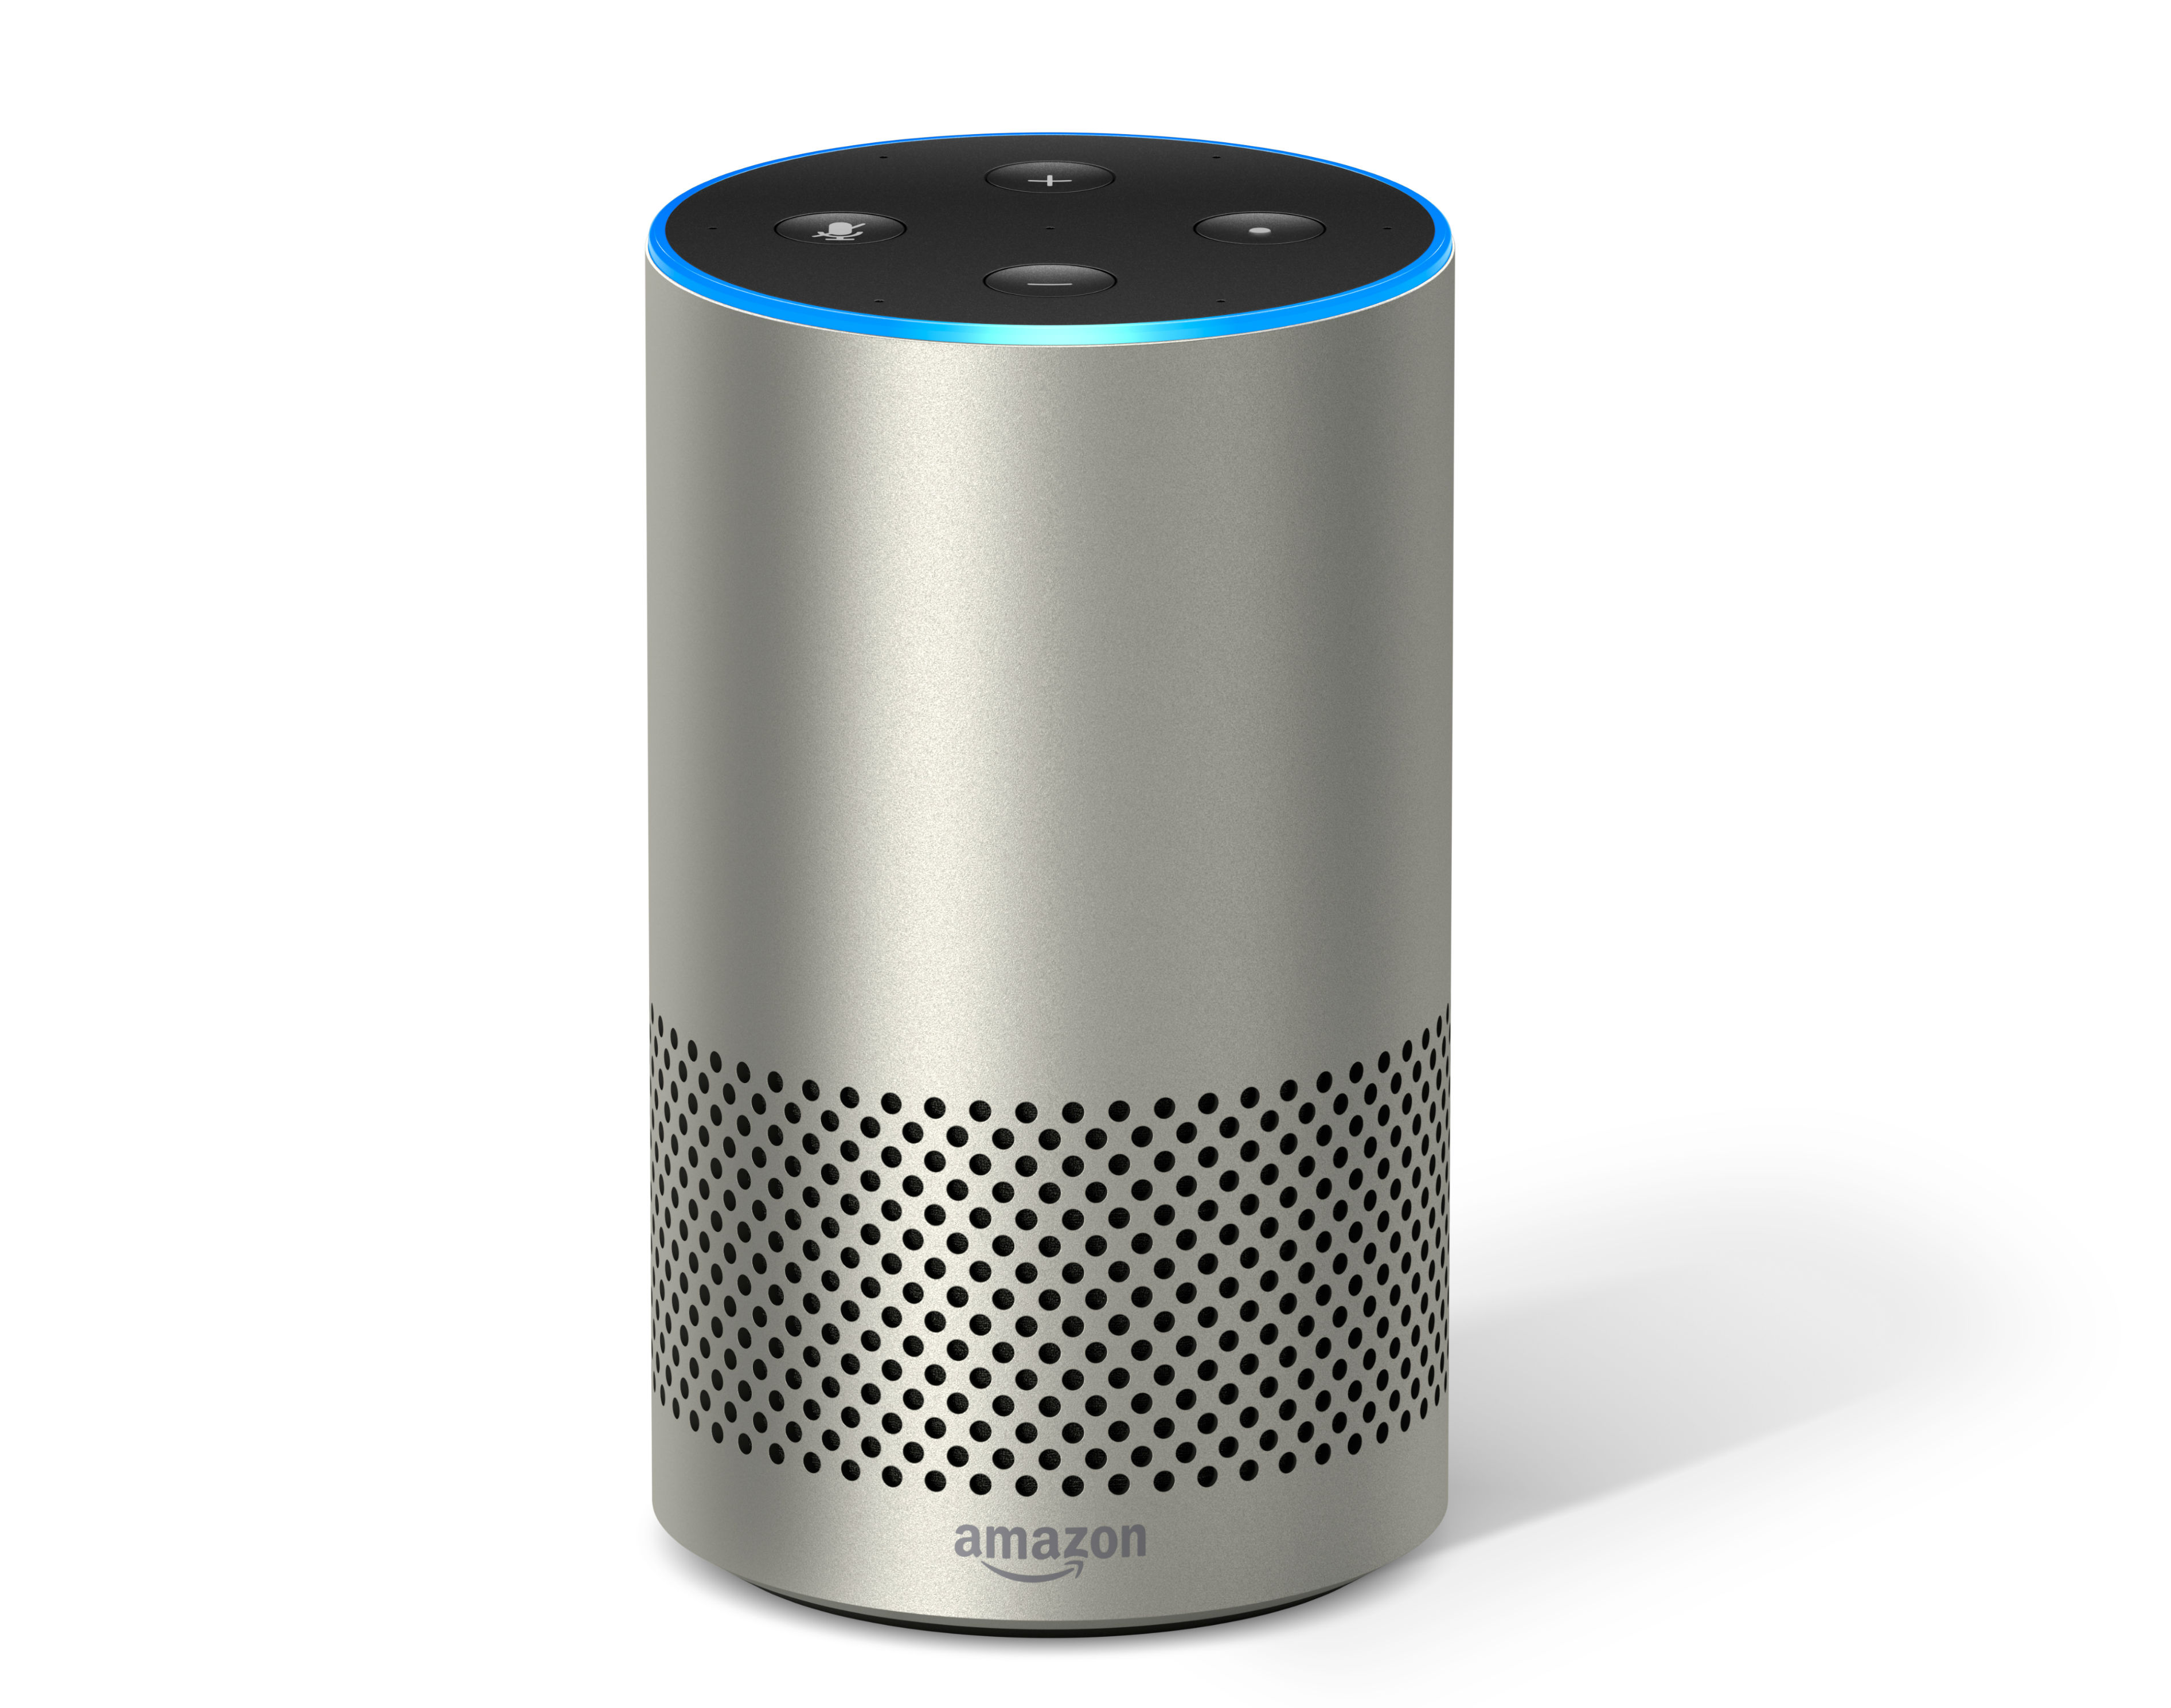 ???echo Is Amazon Going To Announce A Hipaa Compliant Echo Device Soon